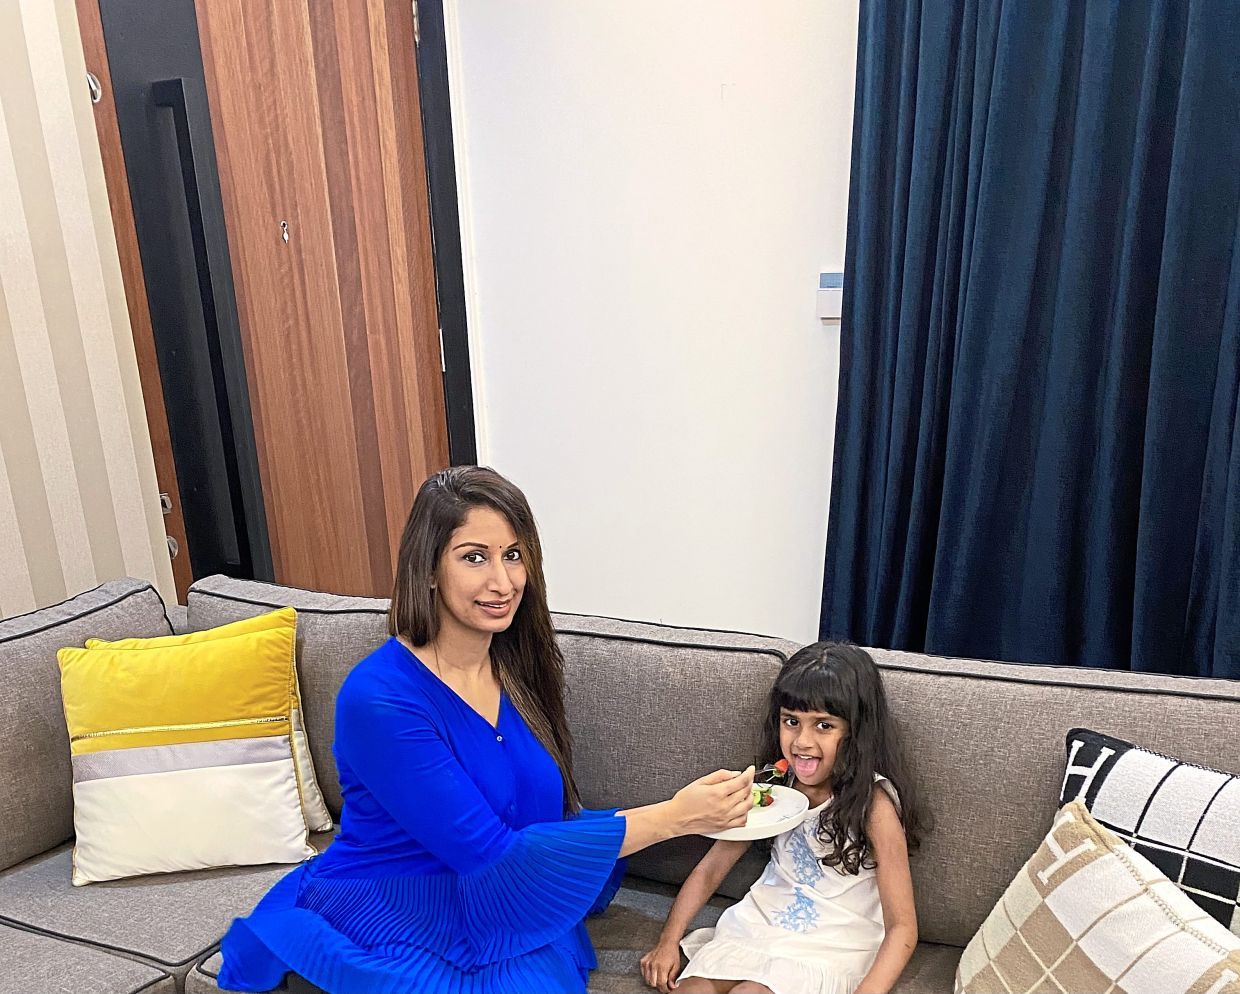 Saritha has been working hard to get four-year-old picky eater Rania to eat a more diverse range of fruits during the lockdown. — SARITHA DEVI KIRUPALANI